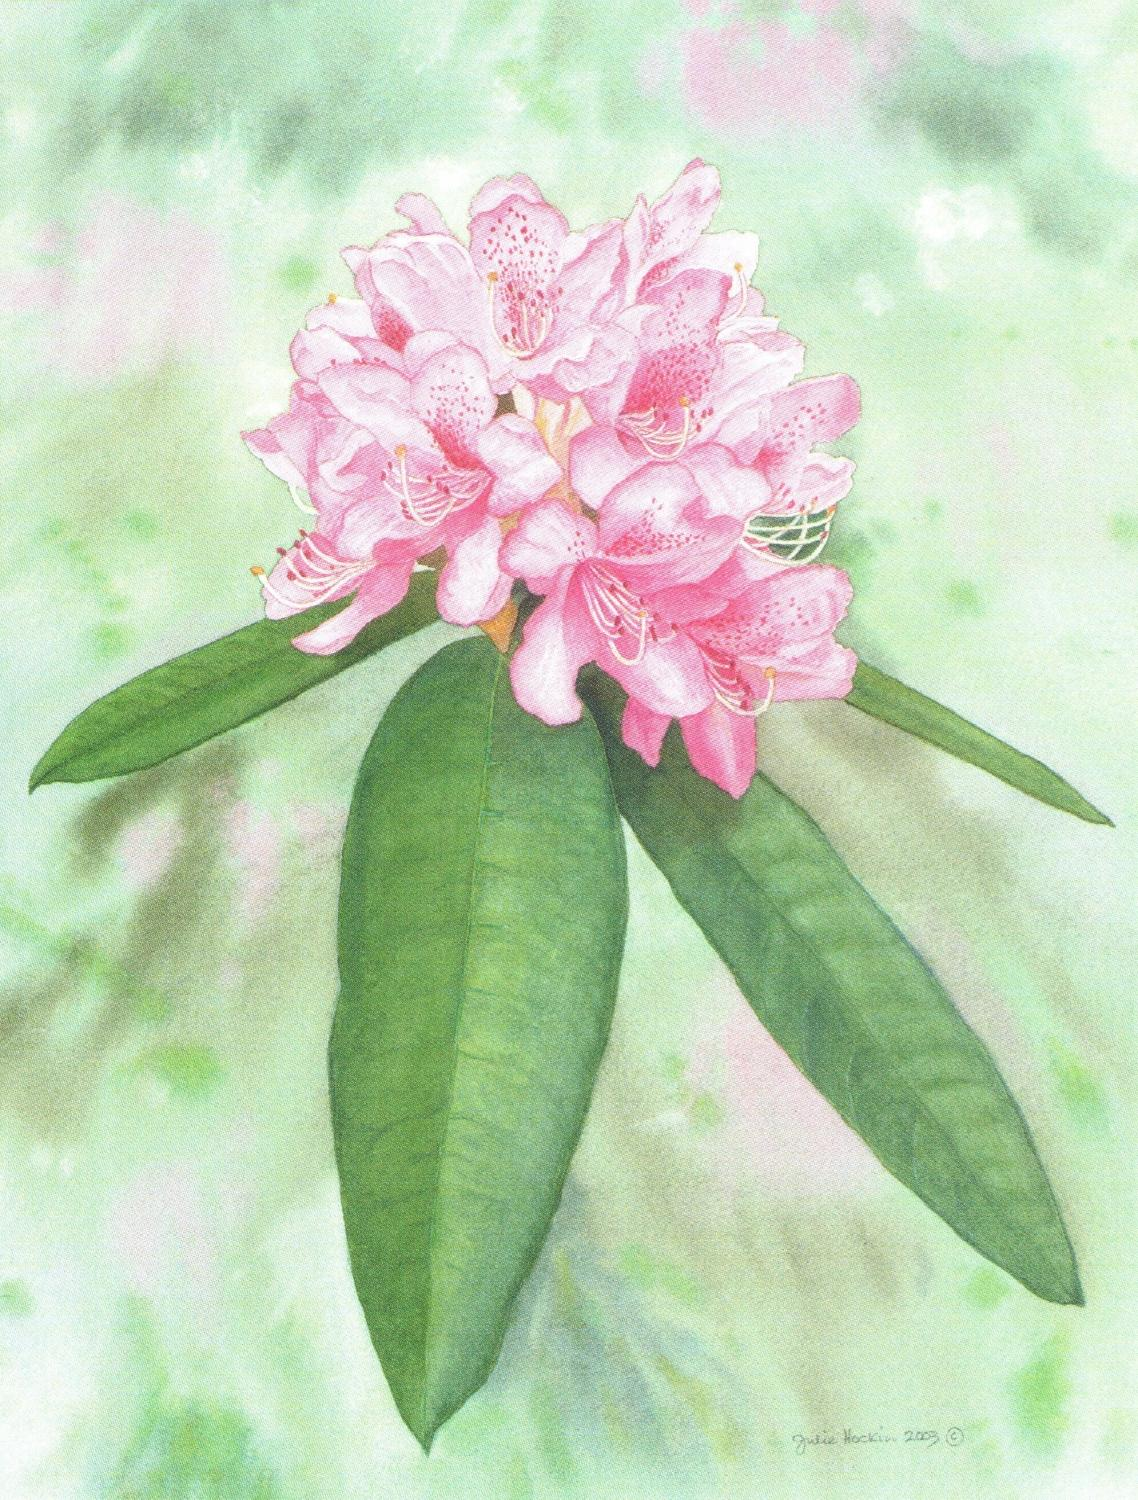 Magnetic Fridge Pad - Rhododendron